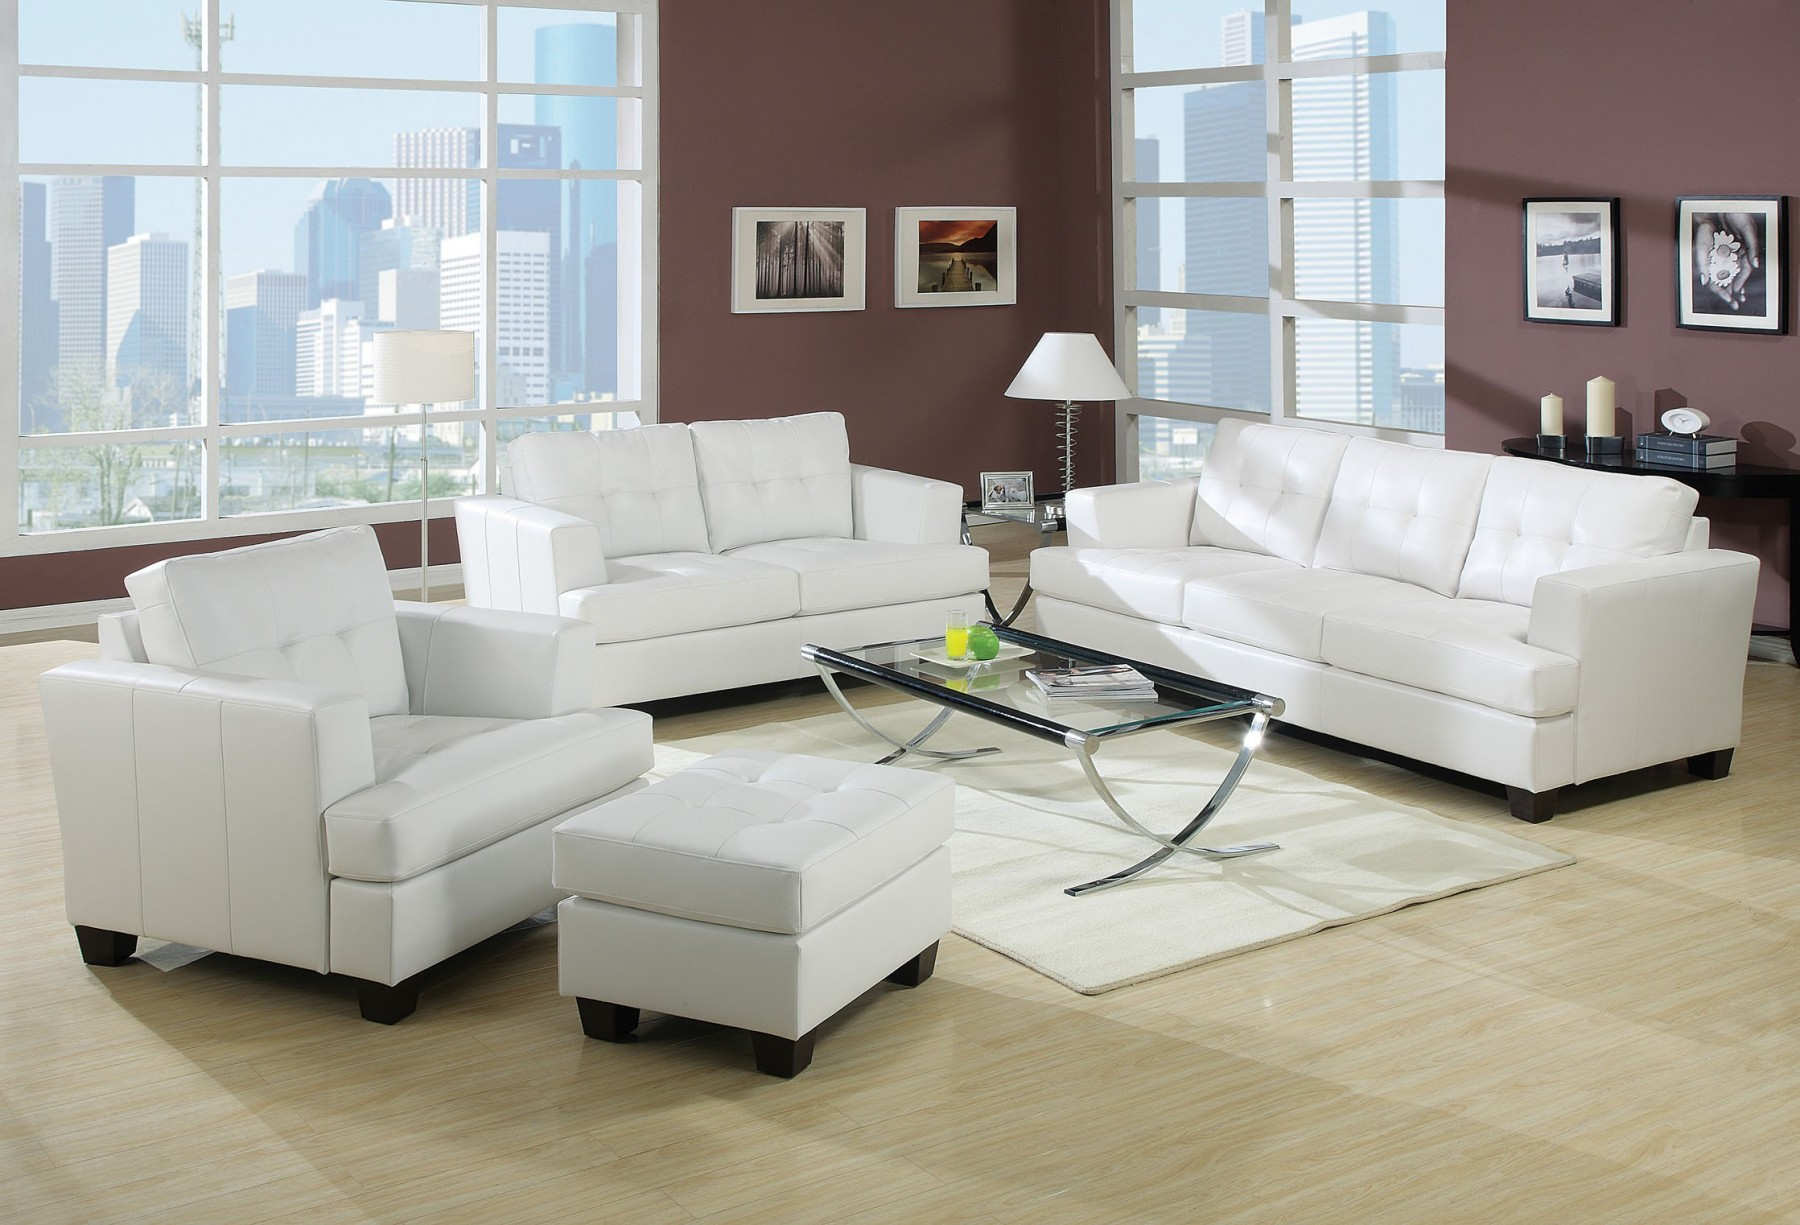 contemporary white leather living room chairs outdoor rooms on a budget acme platinum sofa set loveseat chair bonded tufted back couch plush 3pc walmart com